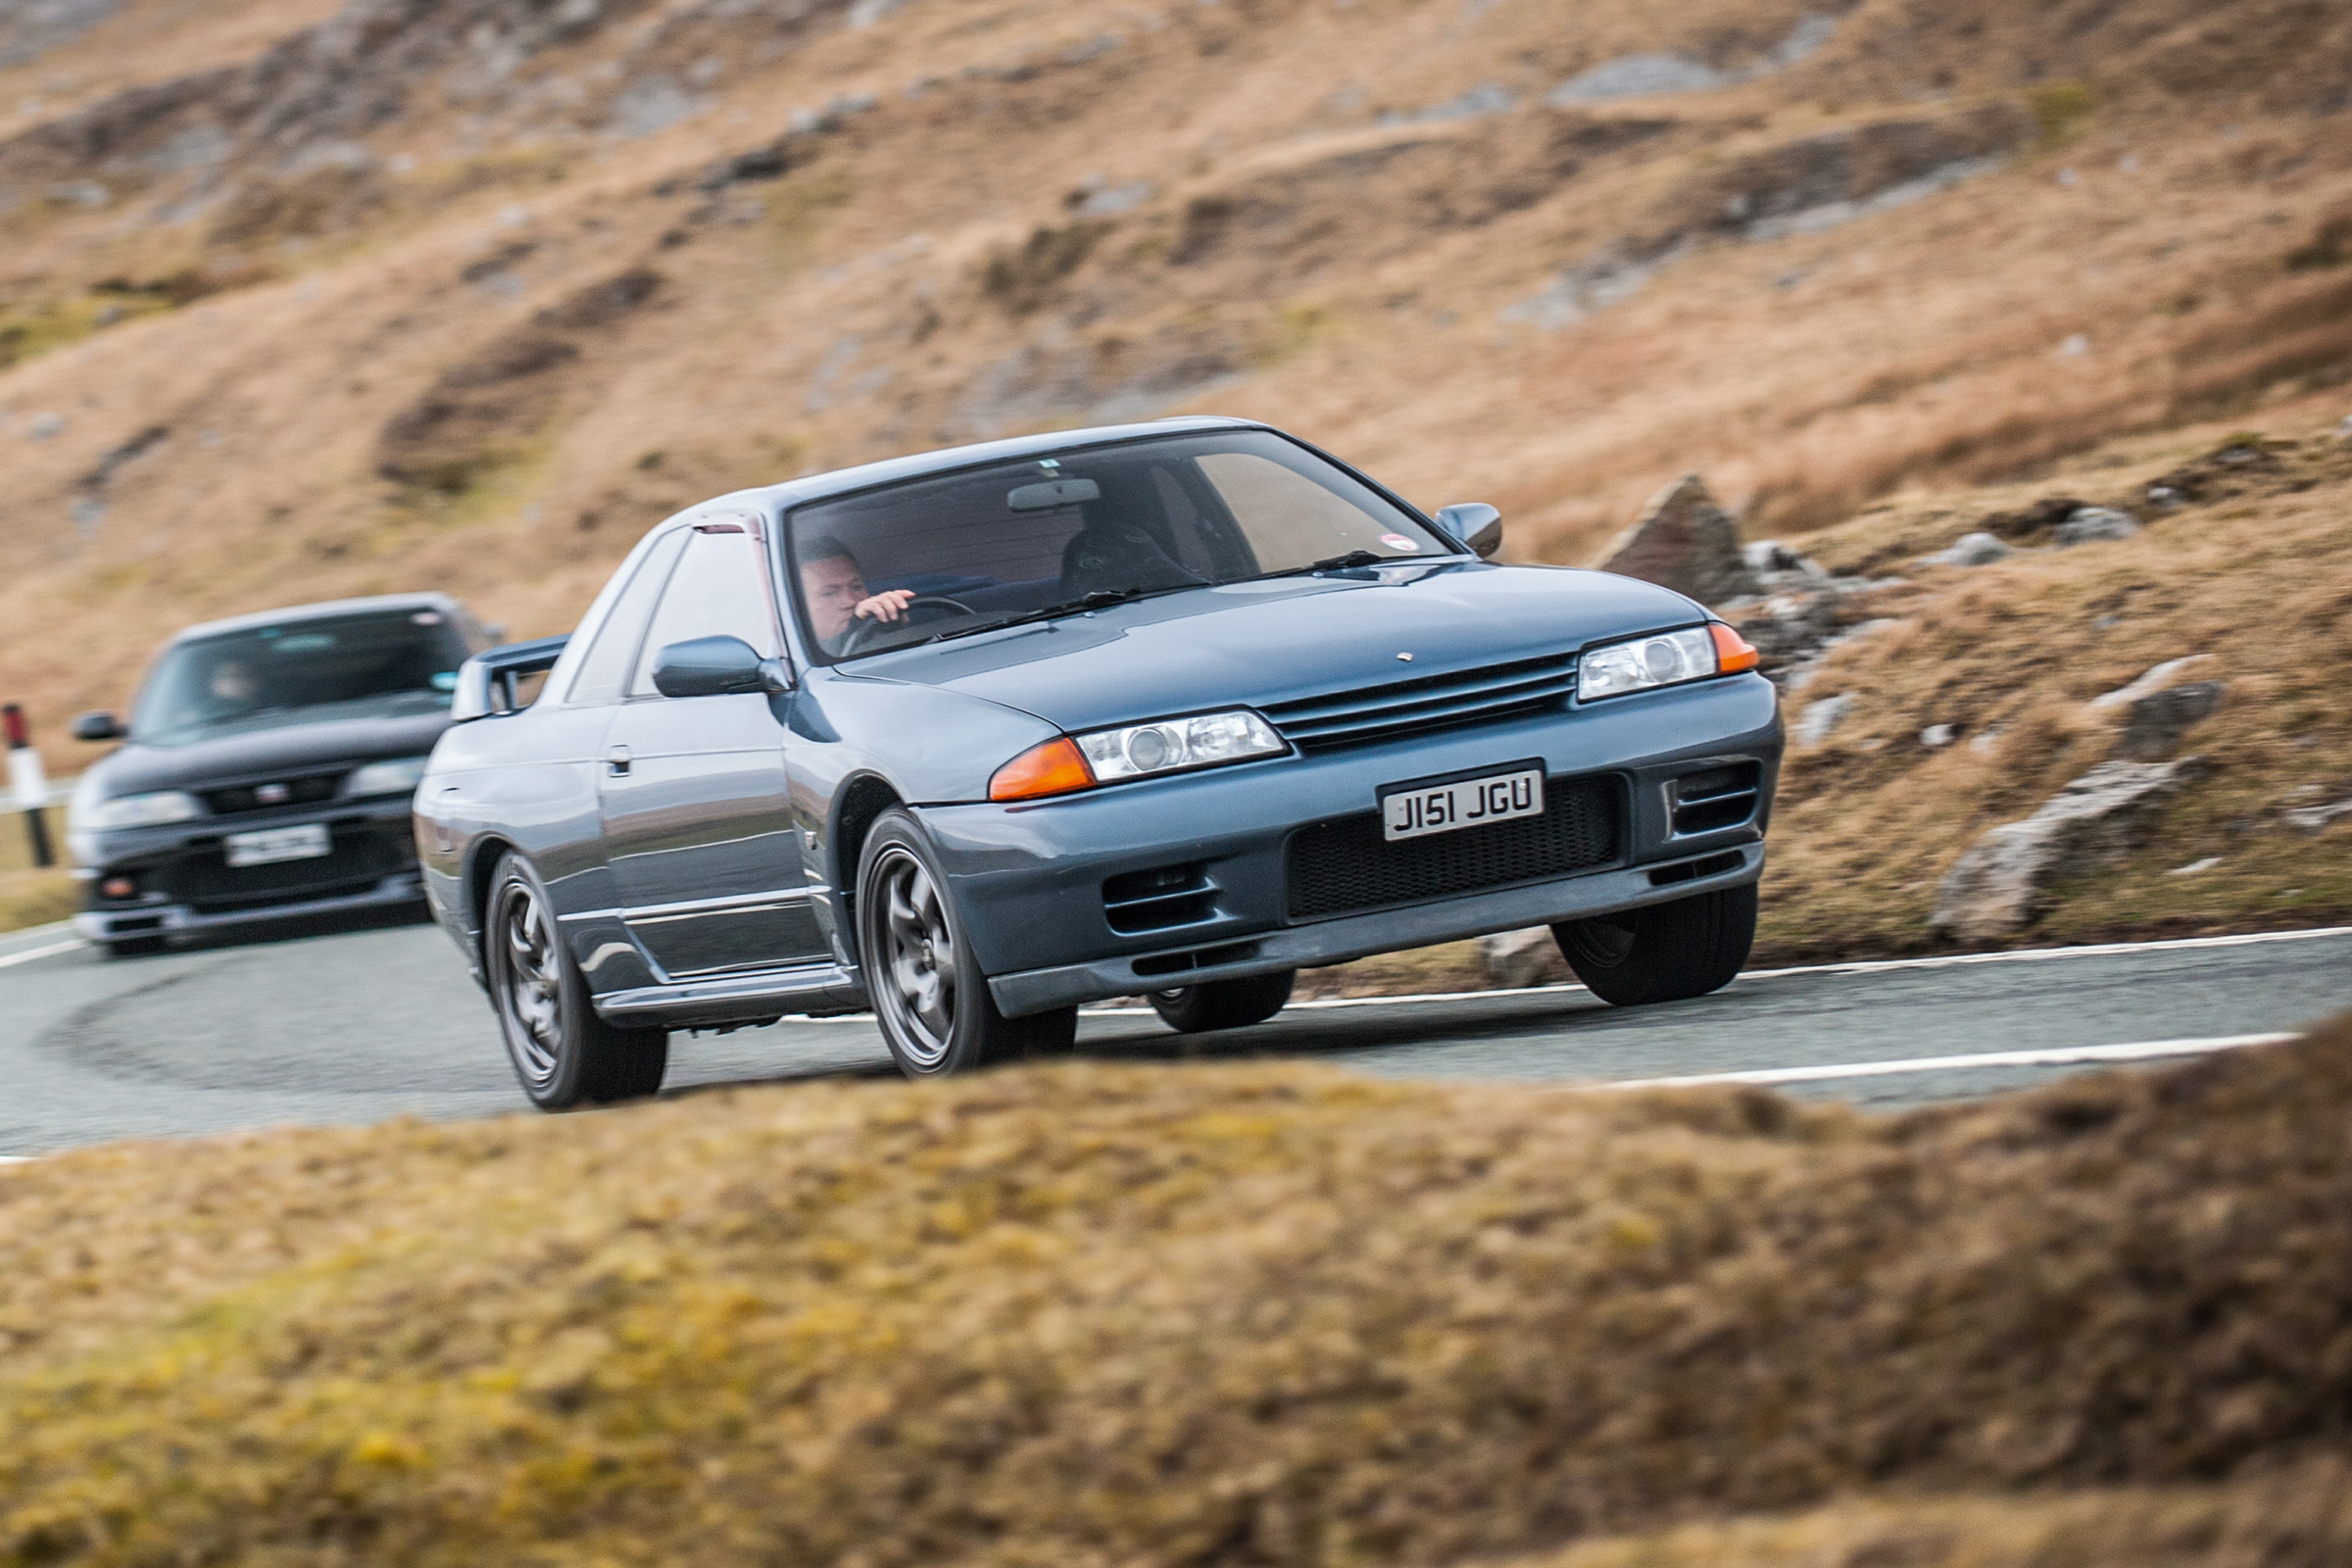 Nissan Skyline GT-R R32 - review, history, prices and ...